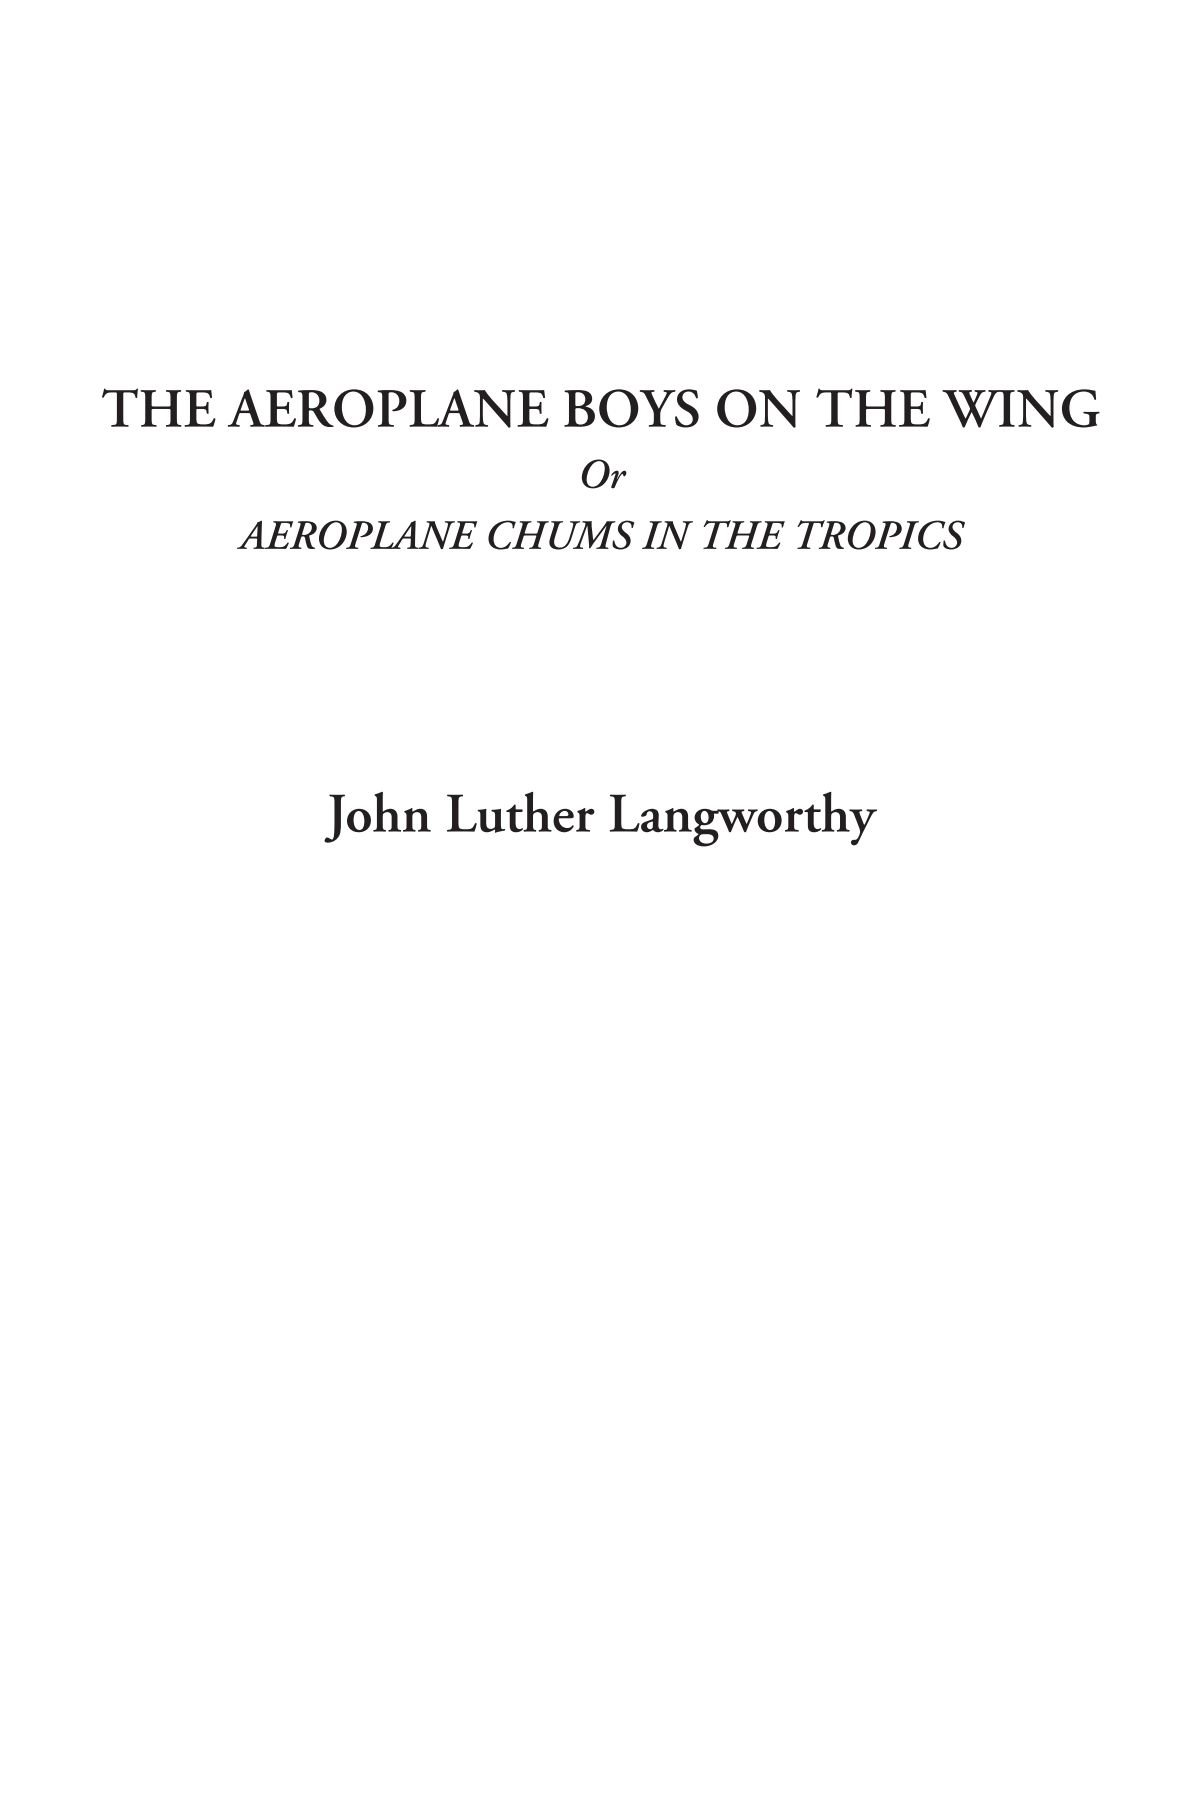 Read Online The Aeroplane Boys on the Wing Or Aeroplane Chums in the Tropics pdf